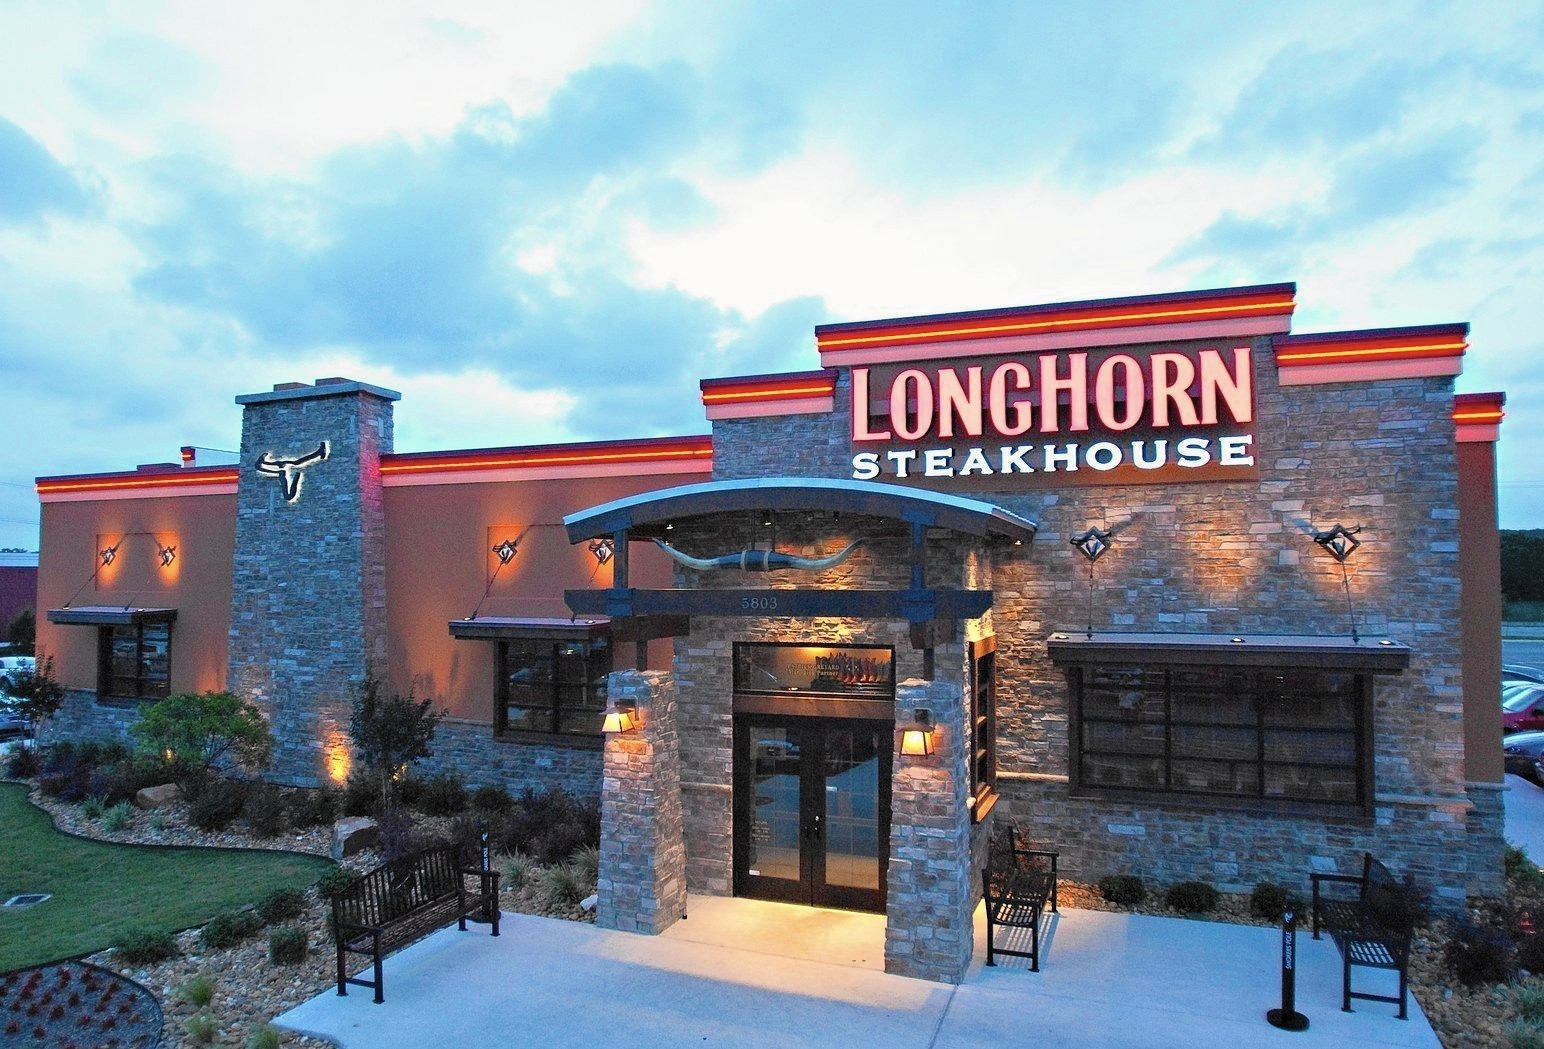 New steakhouse to open in Oswego - Aurora Beacon-News